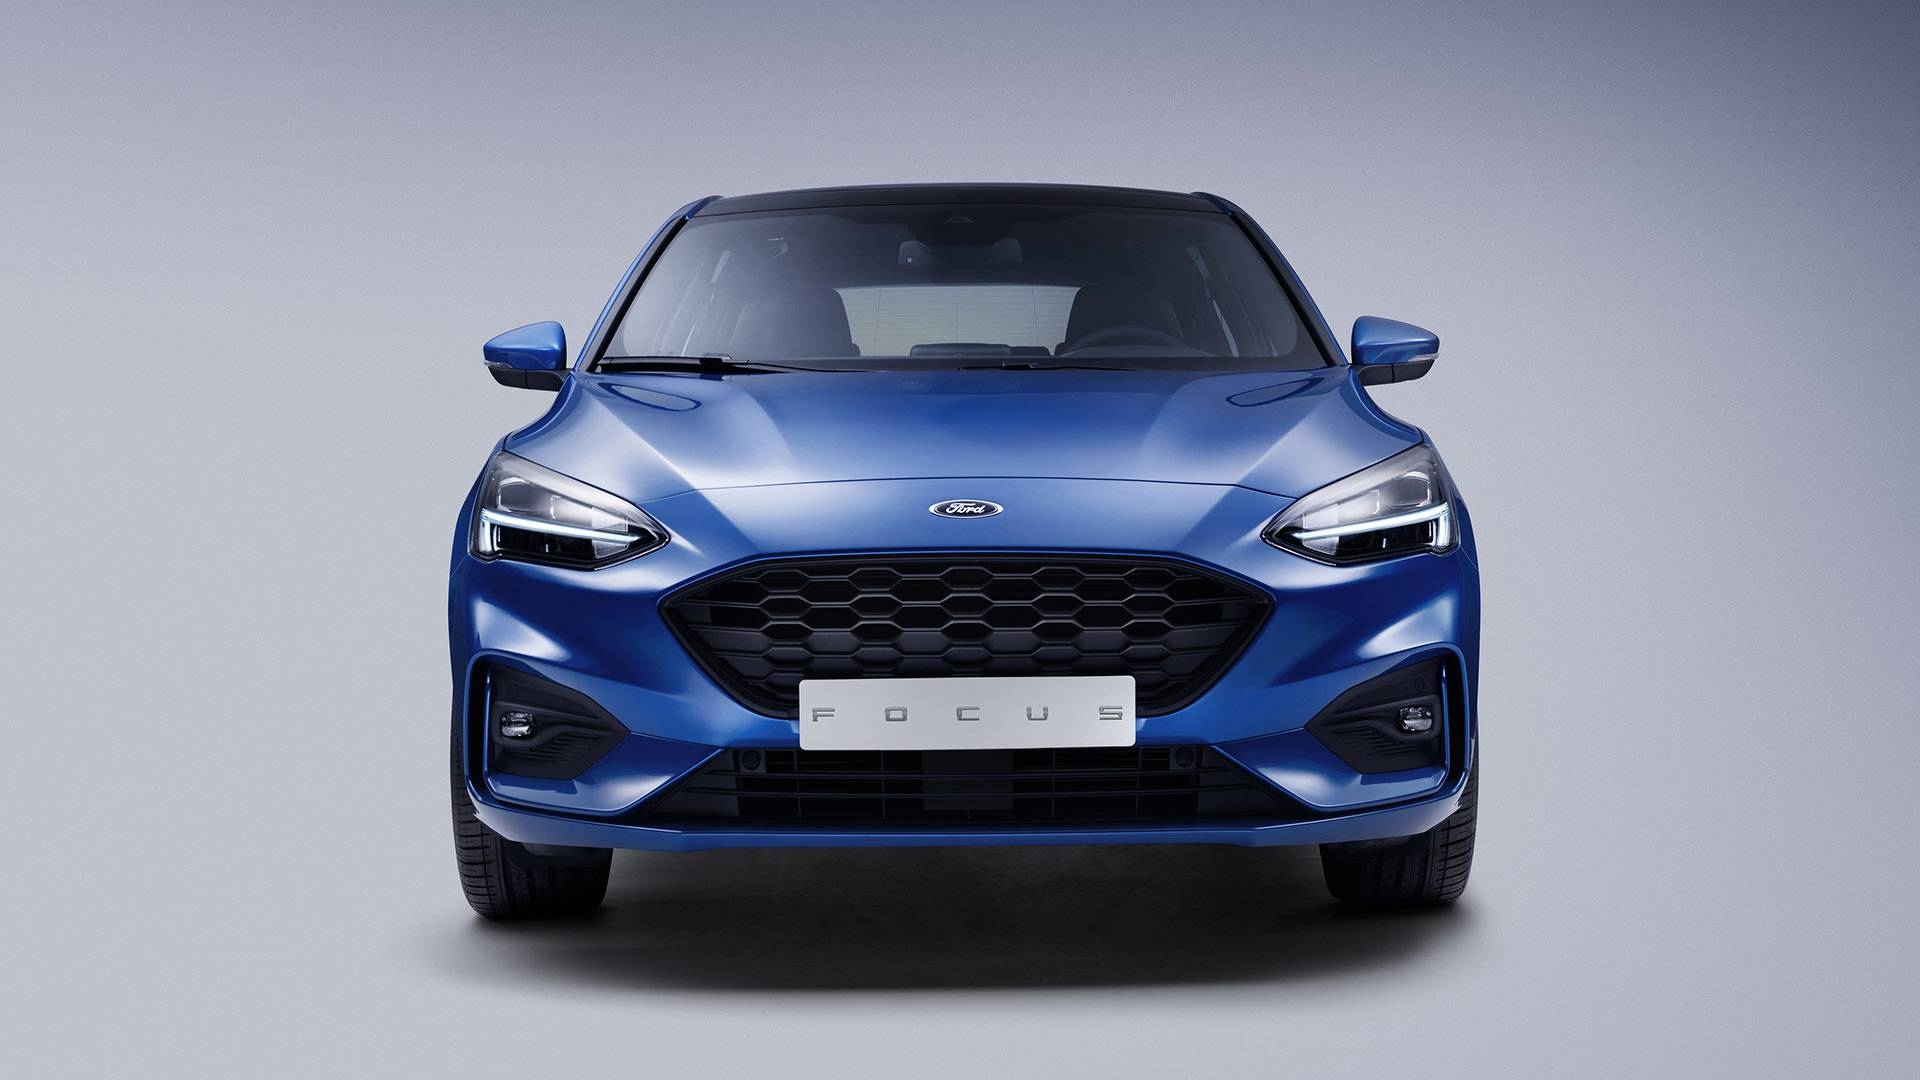 Ford Fiesta Focus Mild Hybrids Announced For 2020 In Europe